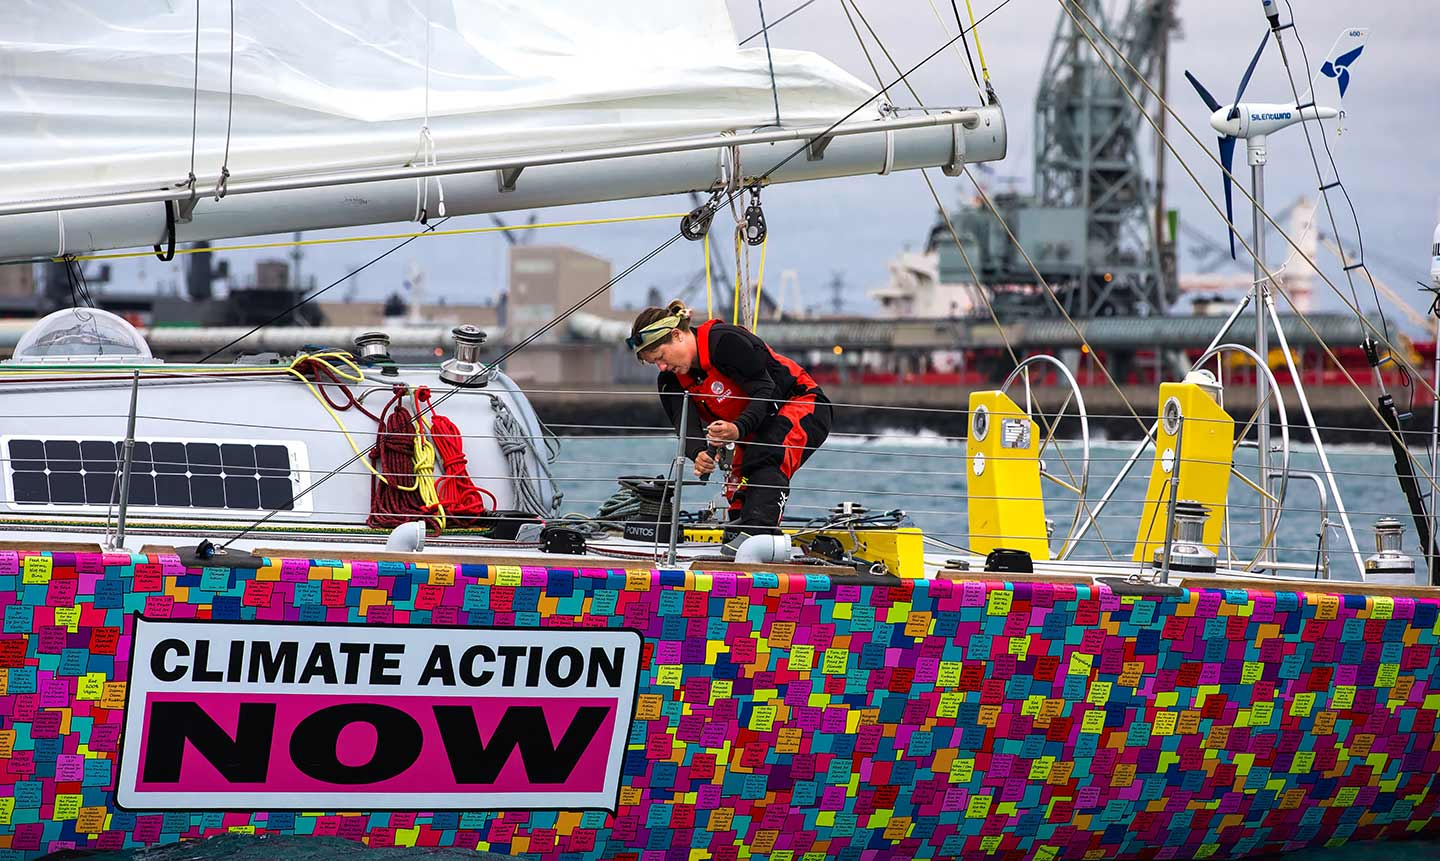 Climate action now   Since Lisa began sailing in 2005 she has noticed the impact that man-made climate change has on our environment.   Learn more